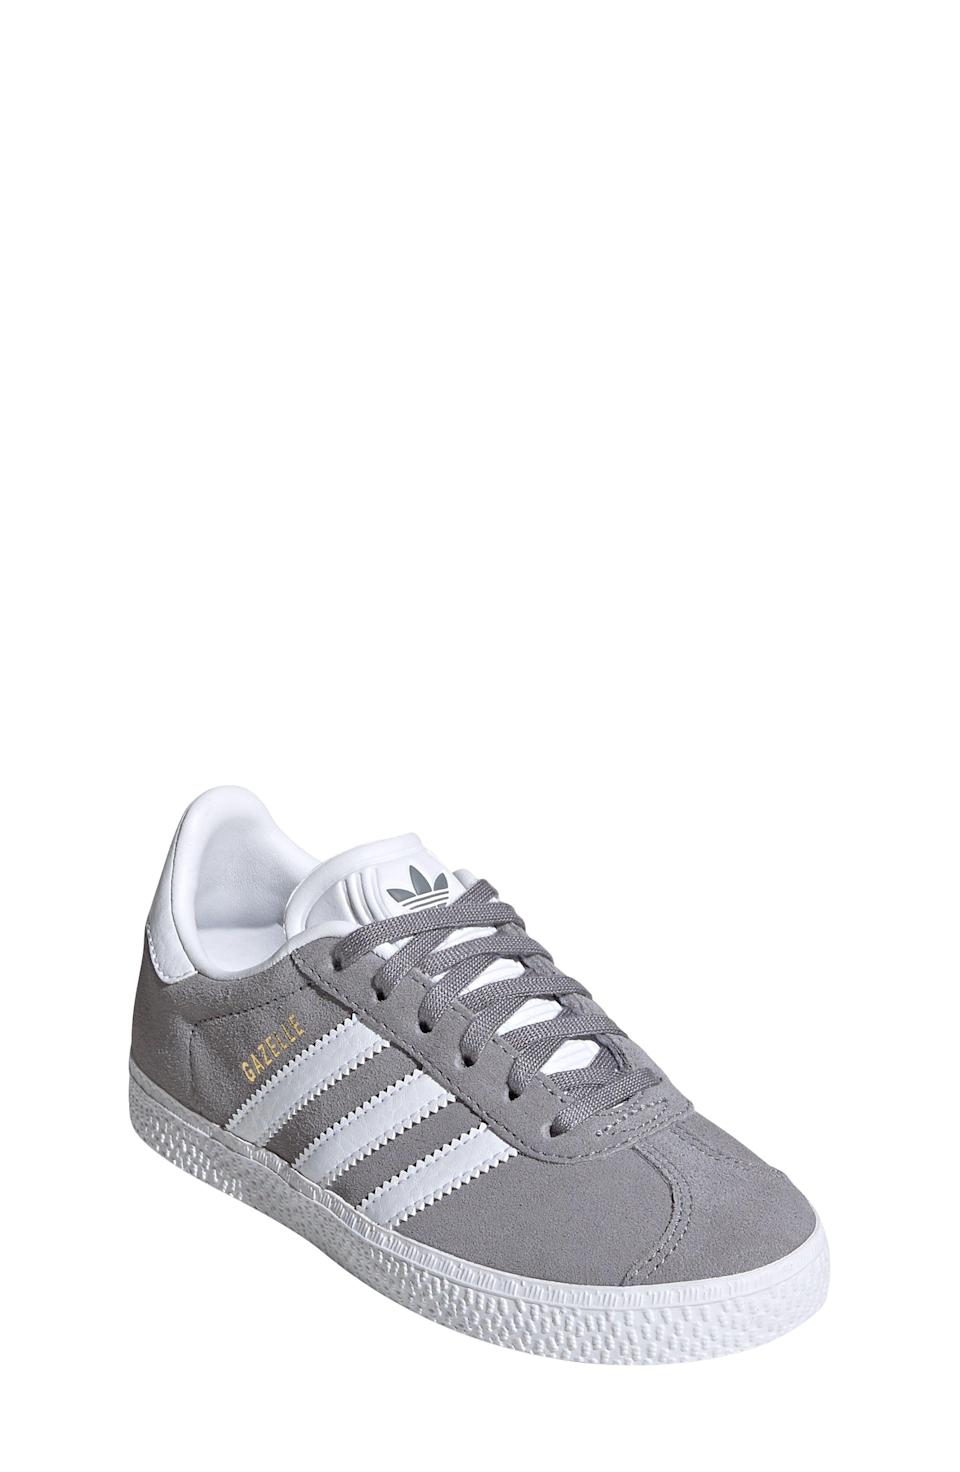 "<p><strong>ADIDAS</strong></p><p>nordstrom.com</p><p><strong>$38.50</strong></p><p><a href=""https://go.redirectingat.com?id=74968X1596630&url=https%3A%2F%2Fwww.nordstrom.com%2Fs%2Fadidas-gazelle-sneaker-toddler-little-kid-big-kid%2F5756309&sref=https%3A%2F%2Fwww.redbookmag.com%2Flife%2Fg34811477%2Fblack-friday-cyber-monday-baby-deals-2020%2F"" rel=""nofollow noopener"" target=""_blank"" data-ylk=""slk:Shop Now"" class=""link rapid-noclick-resp"">Shop Now</a></p><p>A mini version of Prince Harry's go-tos.</p>"